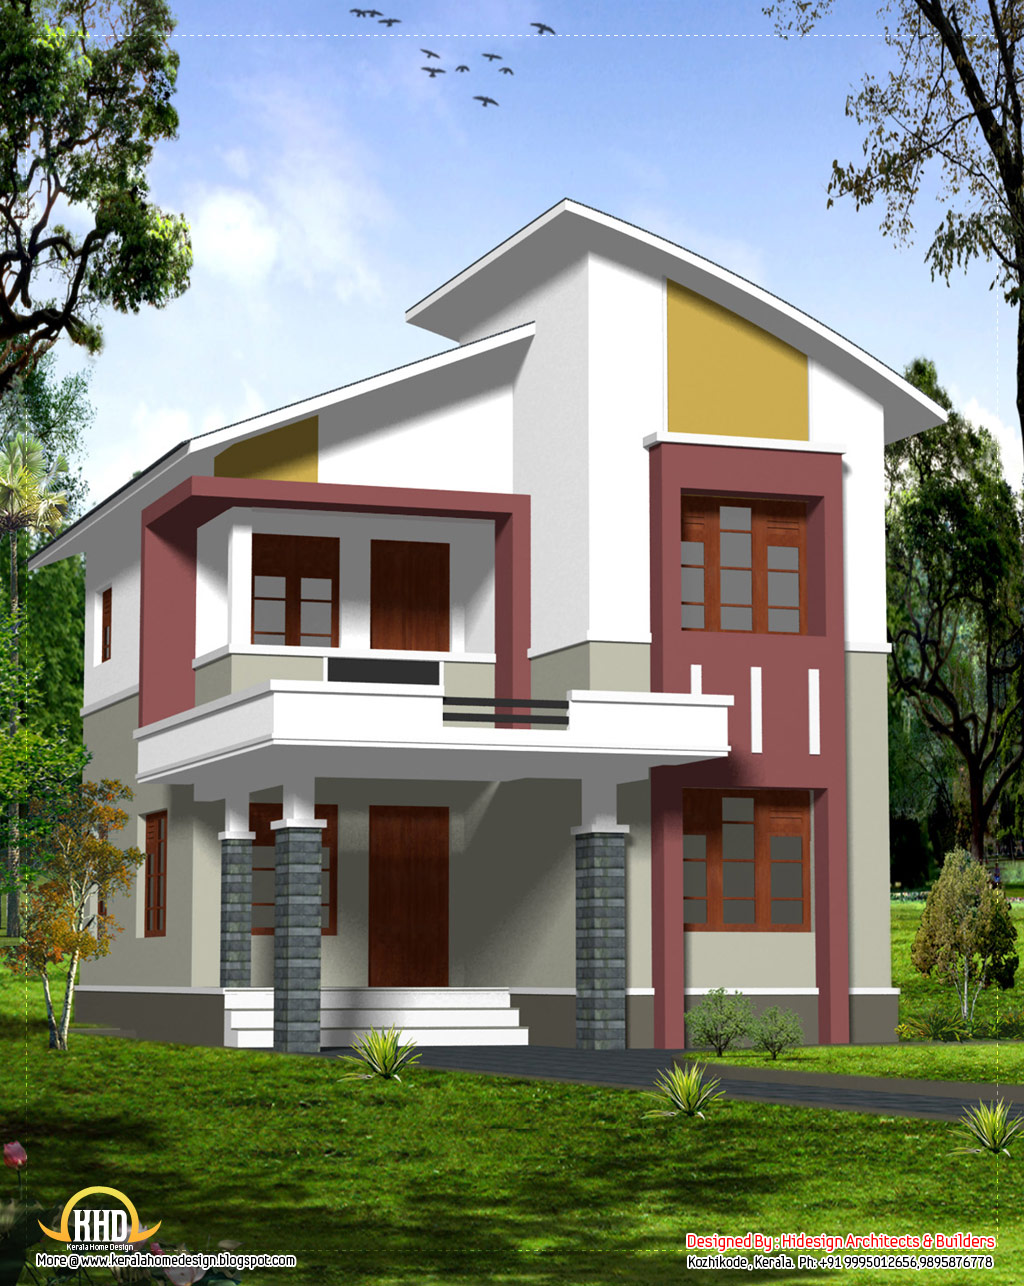 Budget home design 2140 sq ft kerala home design and for Www homedesign com